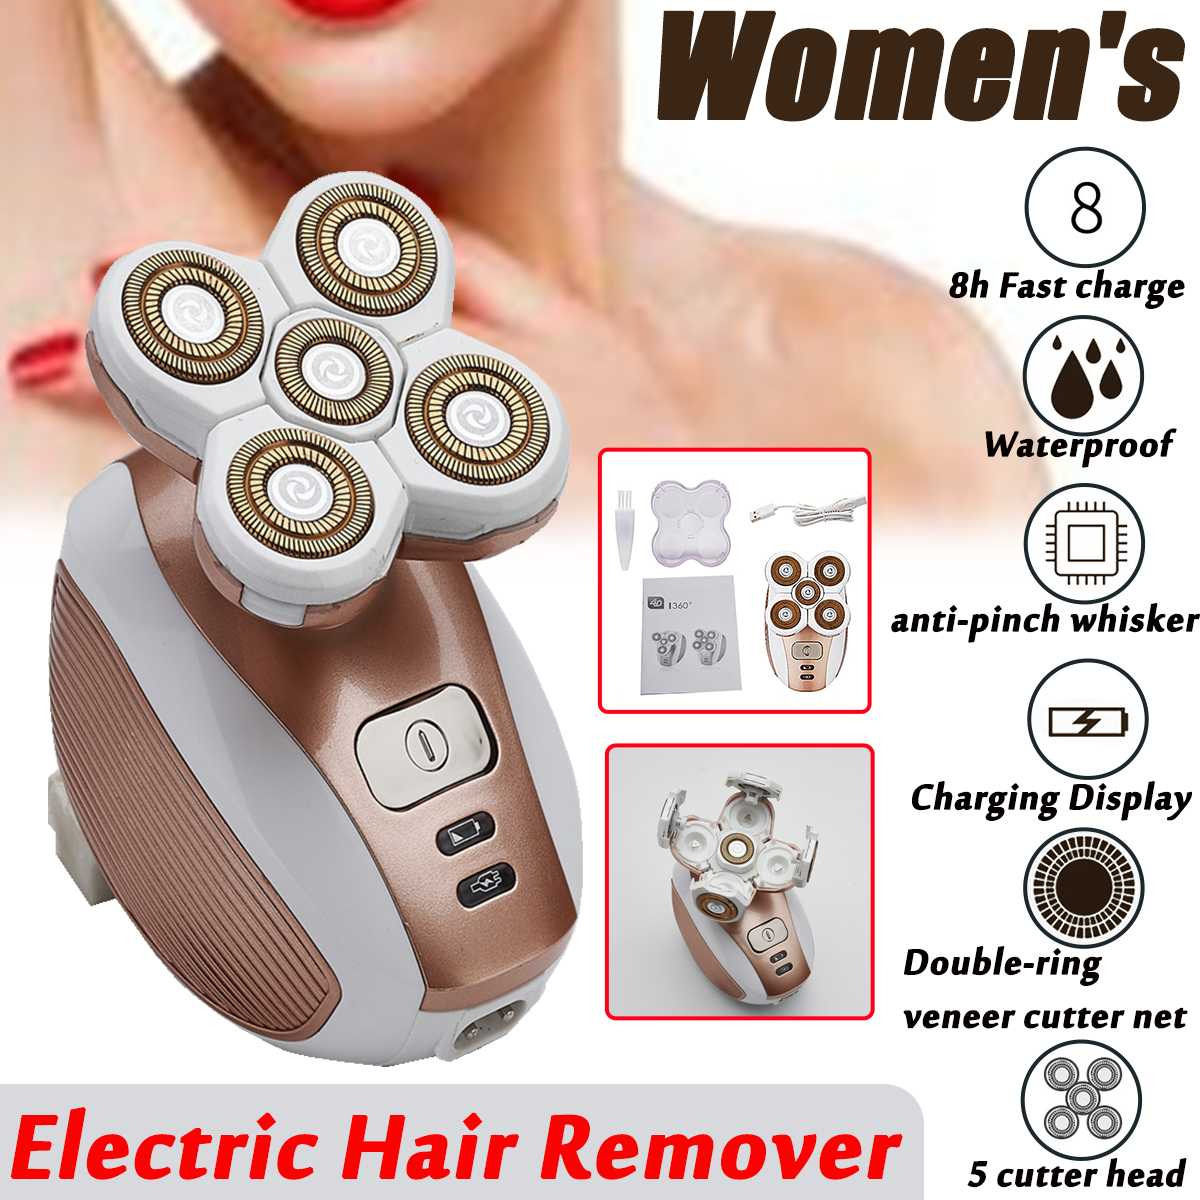 110-240V Washable Womens Facial Electric Hair Remover Waterproof Female Leg Body Face Private Parts Shaving Apparatus Trimmer110-240V Washable Womens Facial Electric Hair Remover Waterproof Female Leg Body Face Private Parts Shaving Apparatus Trimmer